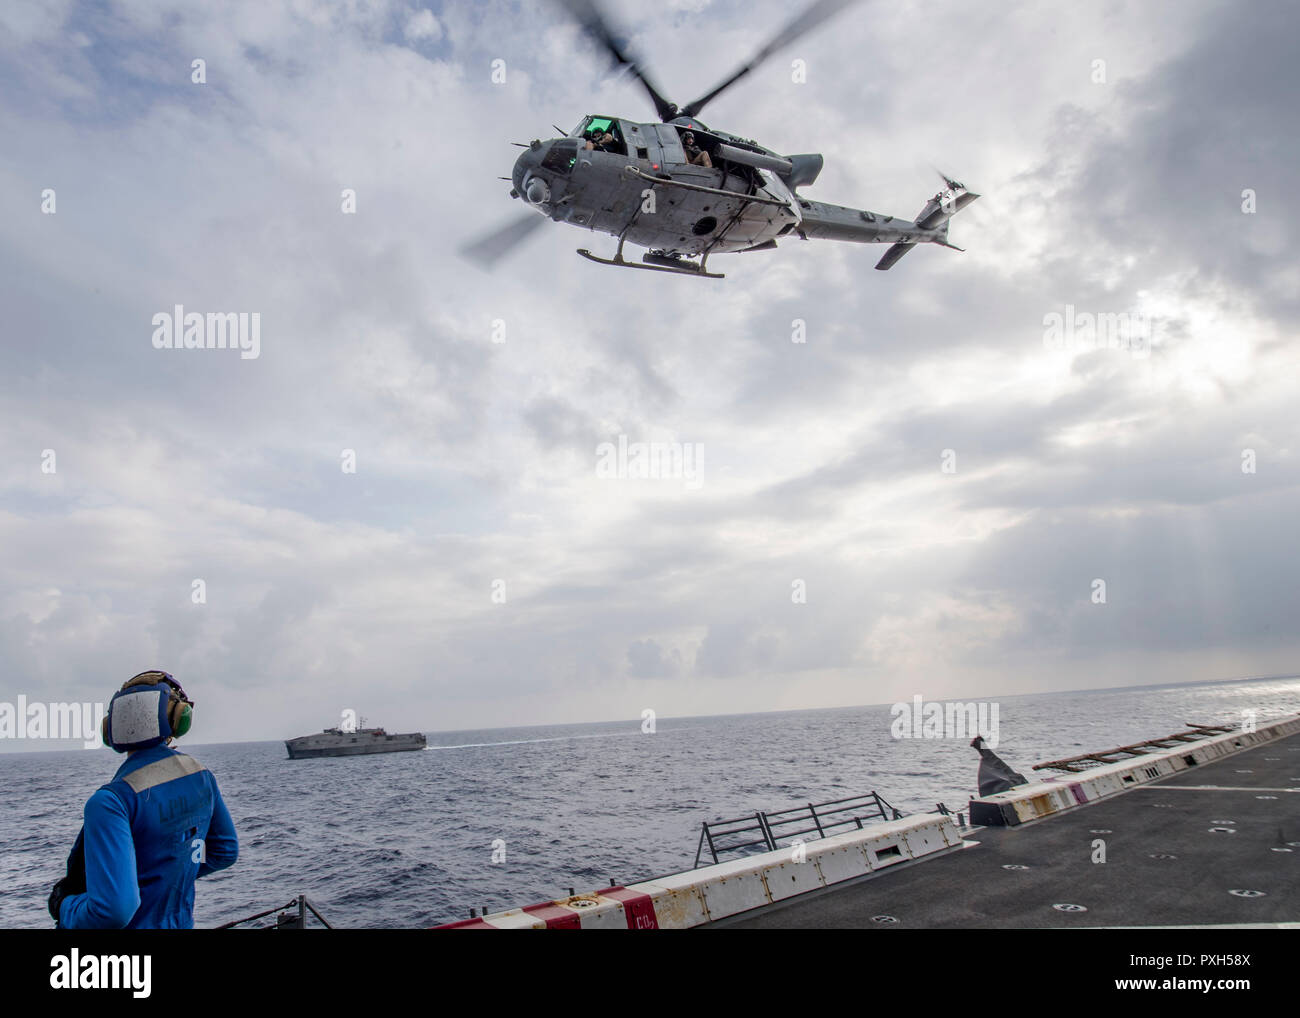 181020-N-PH222-1563 MEDITERRANEAN SEA (Oct. 20, 2018) Damage Controlman 3rd Class Wayne L. Batten, watches a UH-1Y Venom helicopter, attached to Marine Medium Tiltrotor Squadron (VMM) 166 (Reinforced), take off from the flight deck of the San Antonio-class amphibious transport dock ship USS Anchorage (LPD 23) during flight operations with the Spearhead-class expeditionary fast transport ship USNS Carson City (T-EPF-7) in the Mediterranean Sea, Oct. 20, 2018. Anchorage and embarked 13th Marine Expeditionary Unit are deployed to the U.S. 6th Fleet area of operations as a crisis response force in - Stock Image